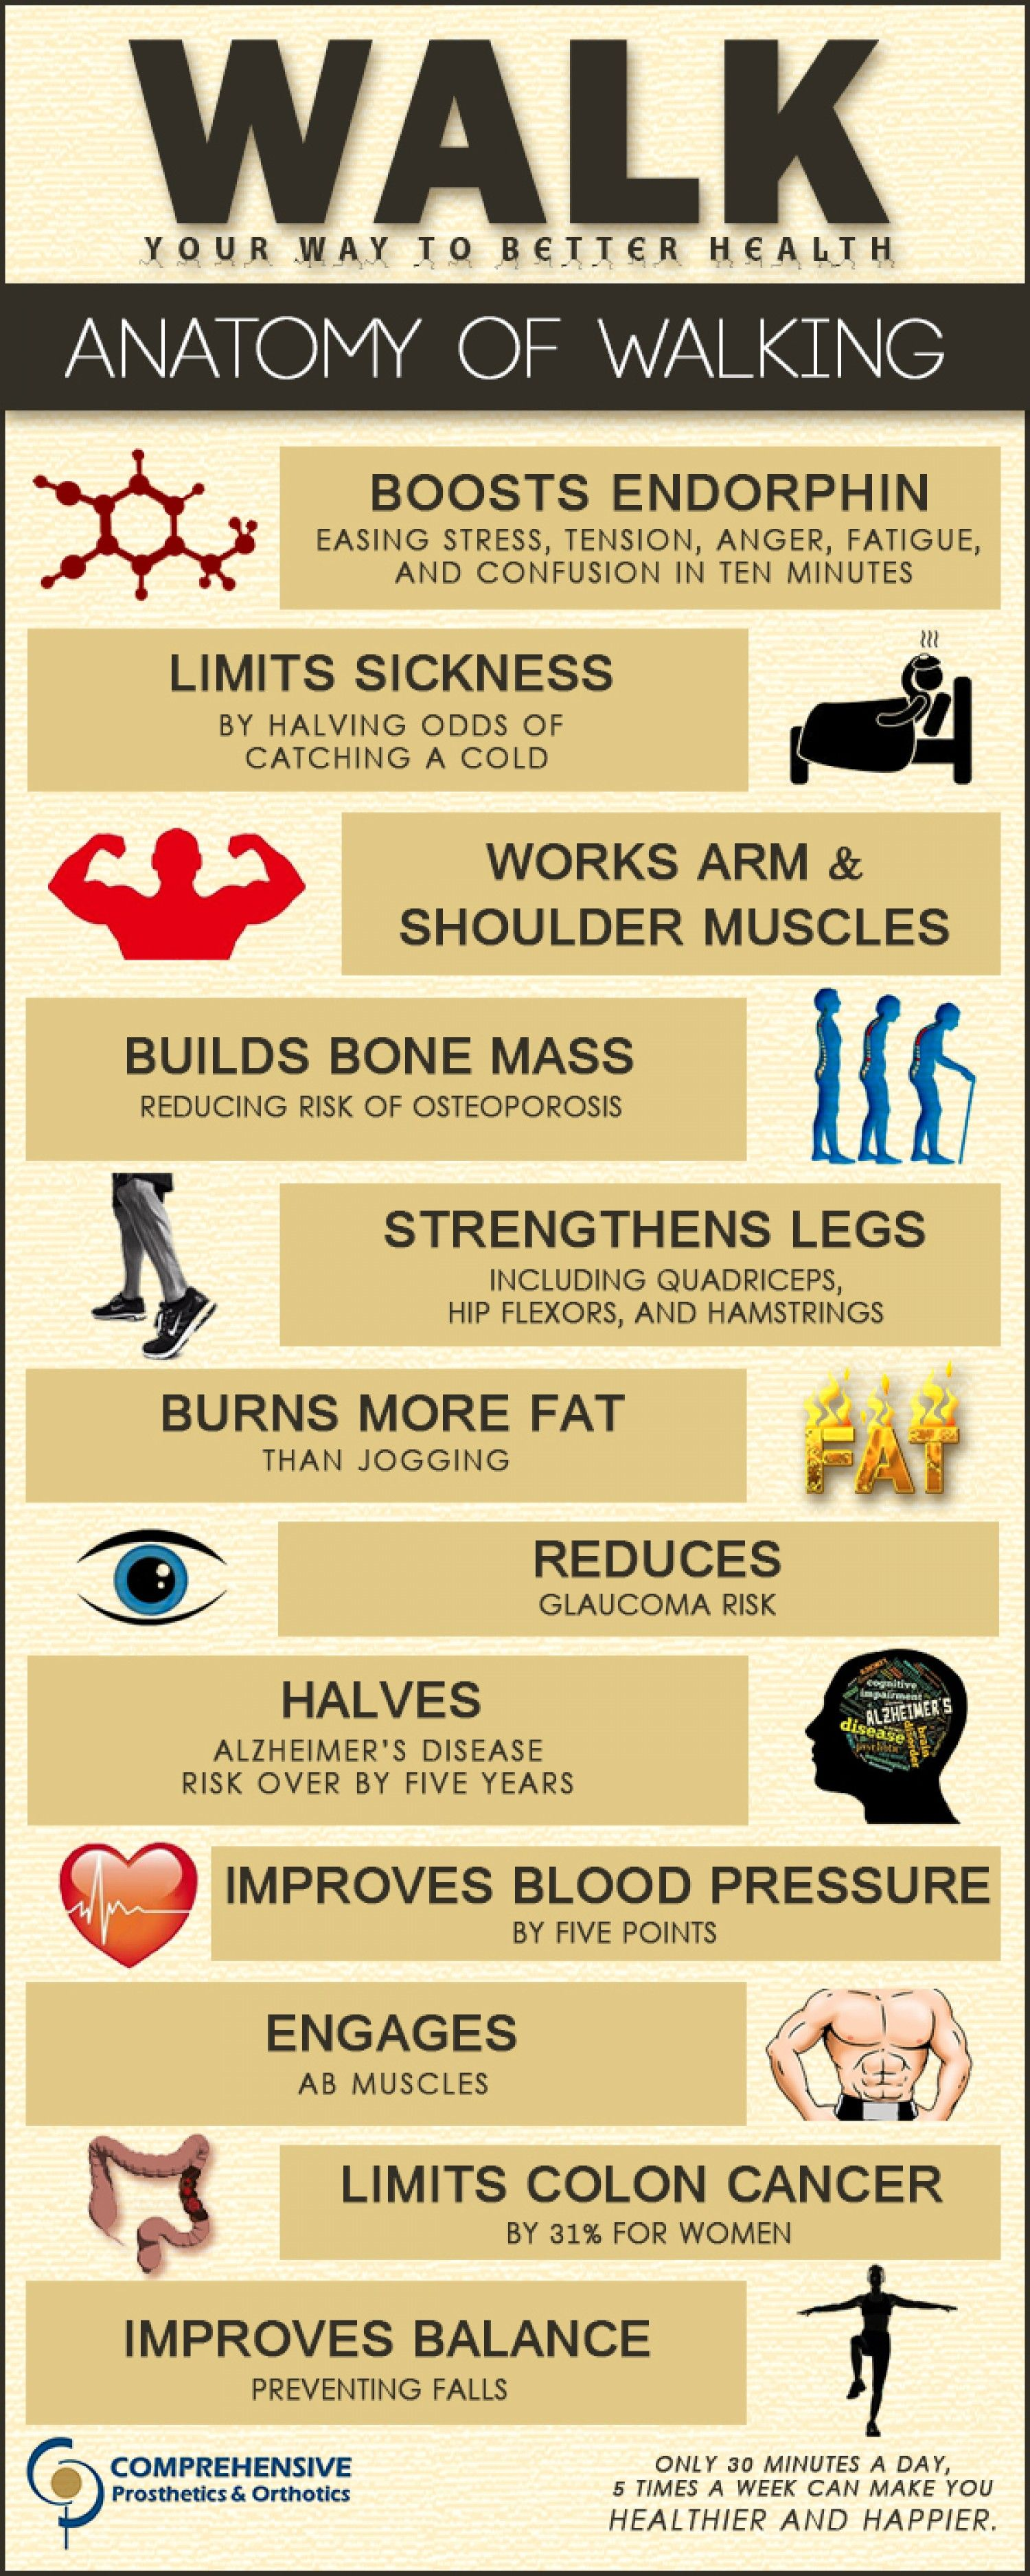 Walk Your Way To Better Health This Infographic Illustrates How Regular Walking Can Lead To Overall Good Health Health And Wellness Health Health Tips